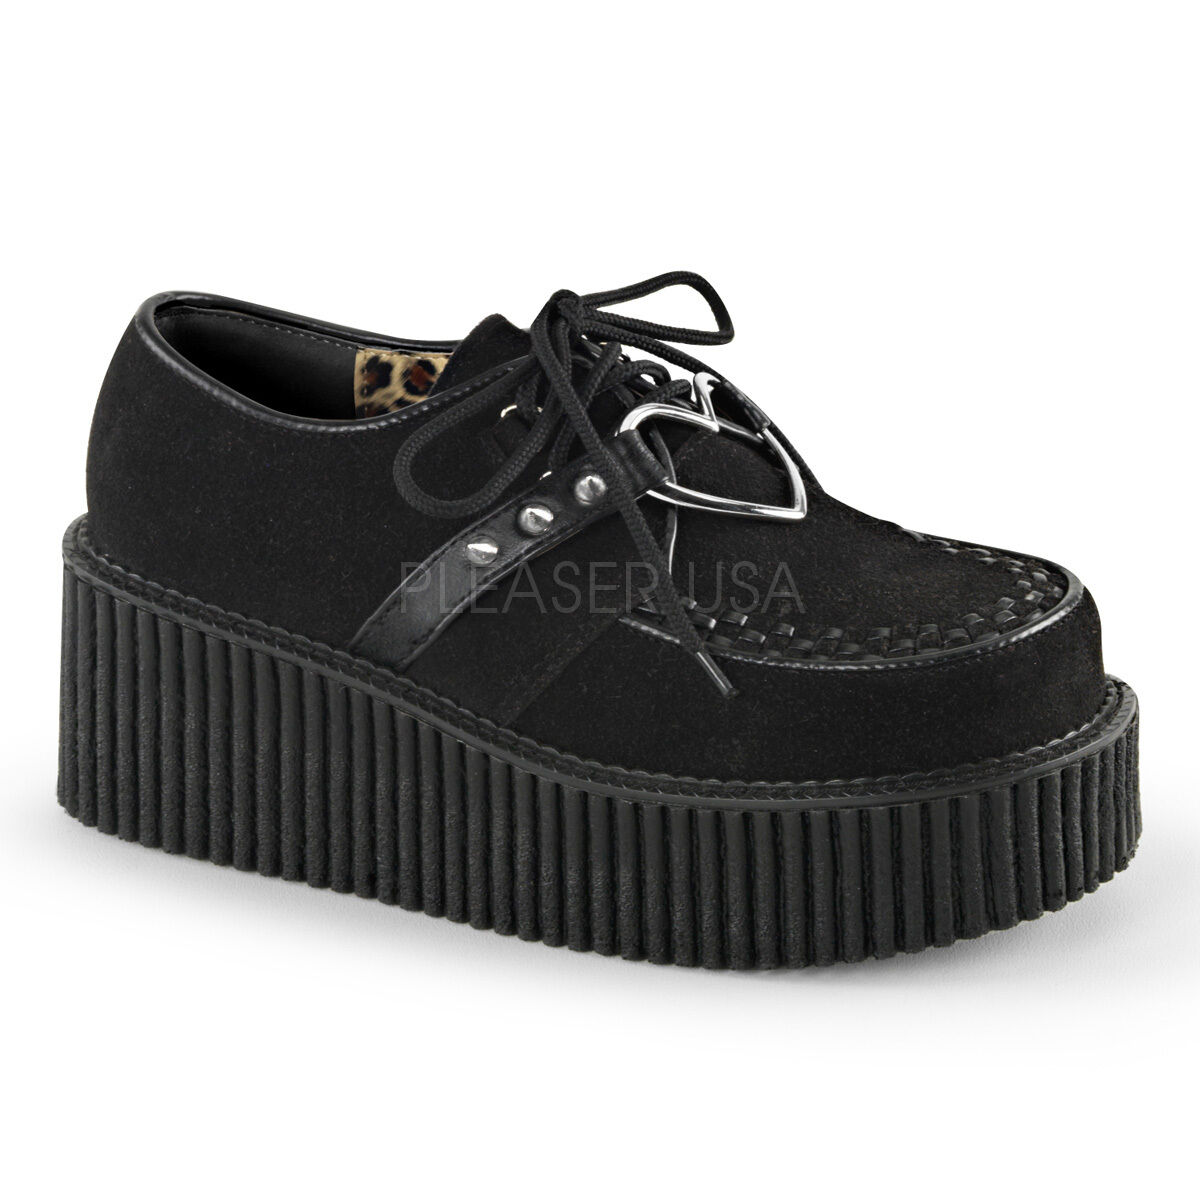 DEMONIA CREEPER-206 Women's Vegan Gothic Heart O-Ring Platform Creepers shoes